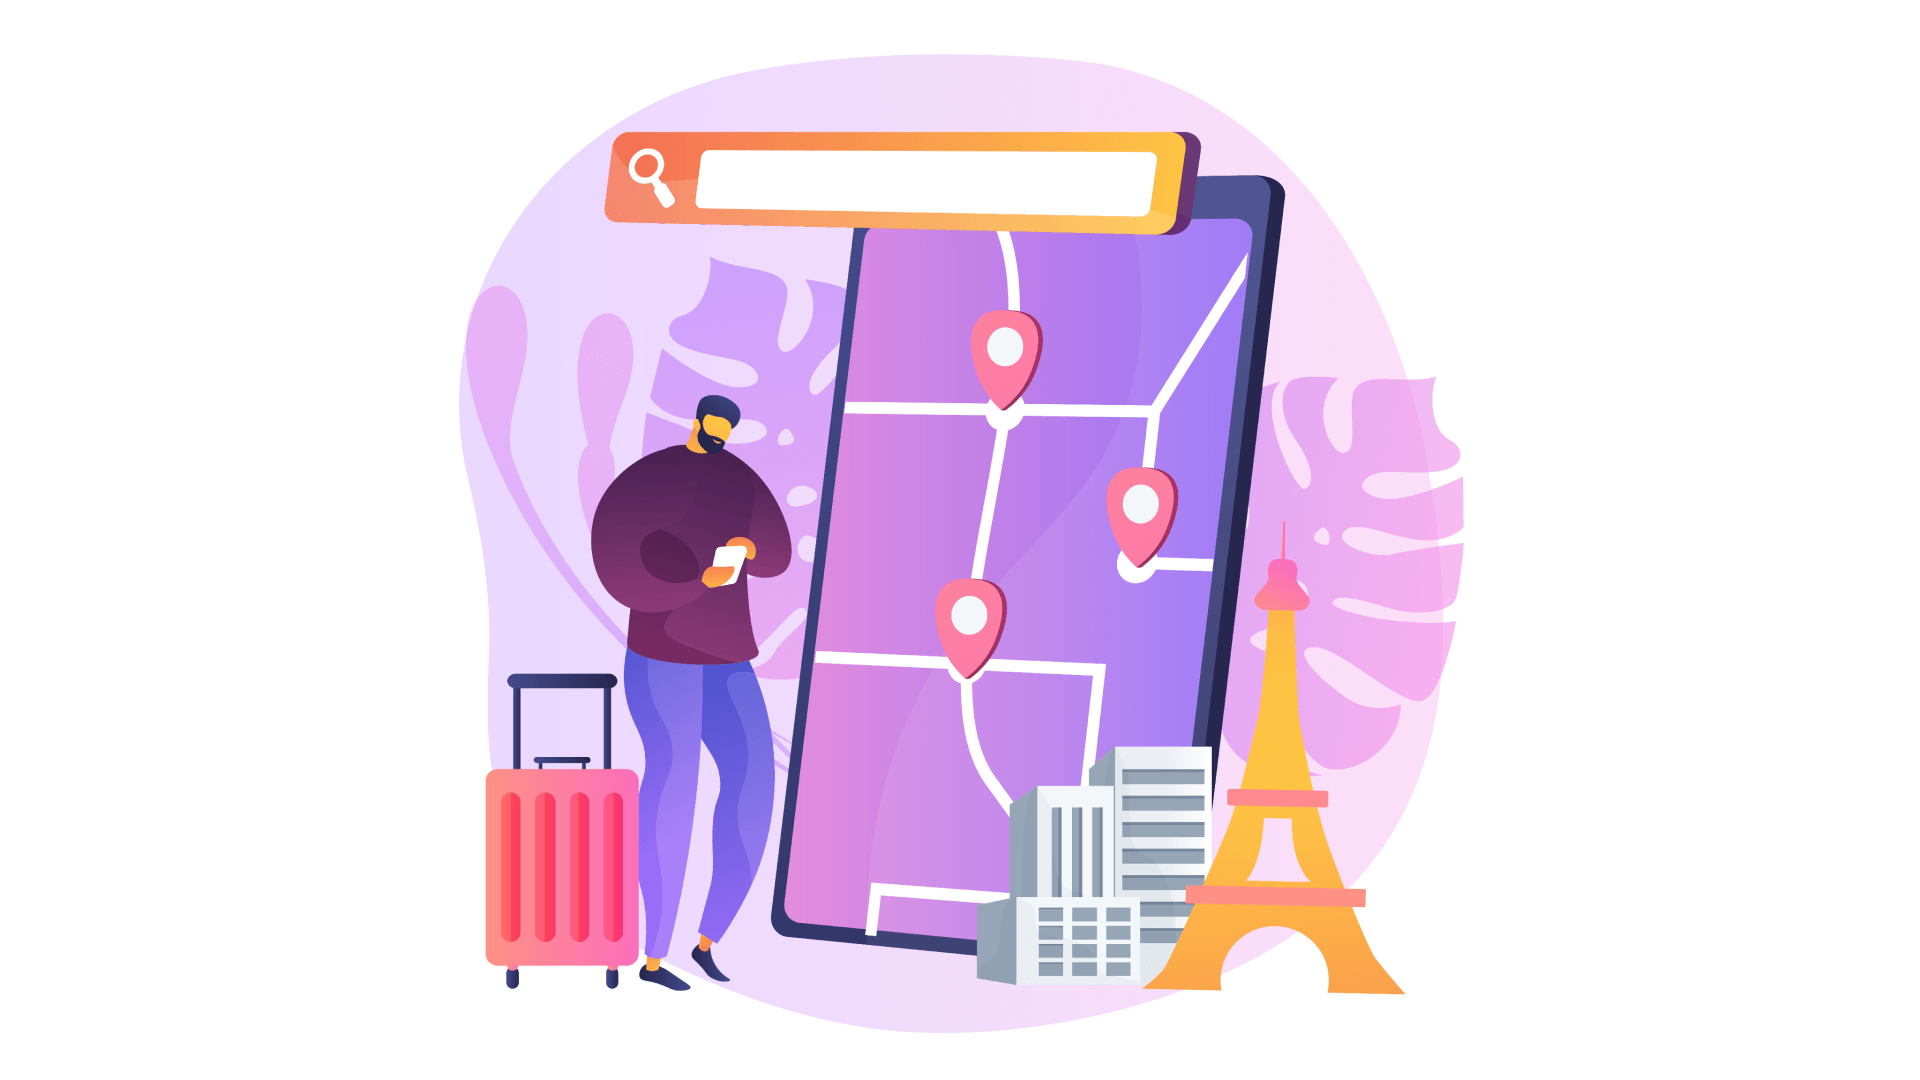 How to Build a Geolocation App: Steps, Features, and Key Industry Insights